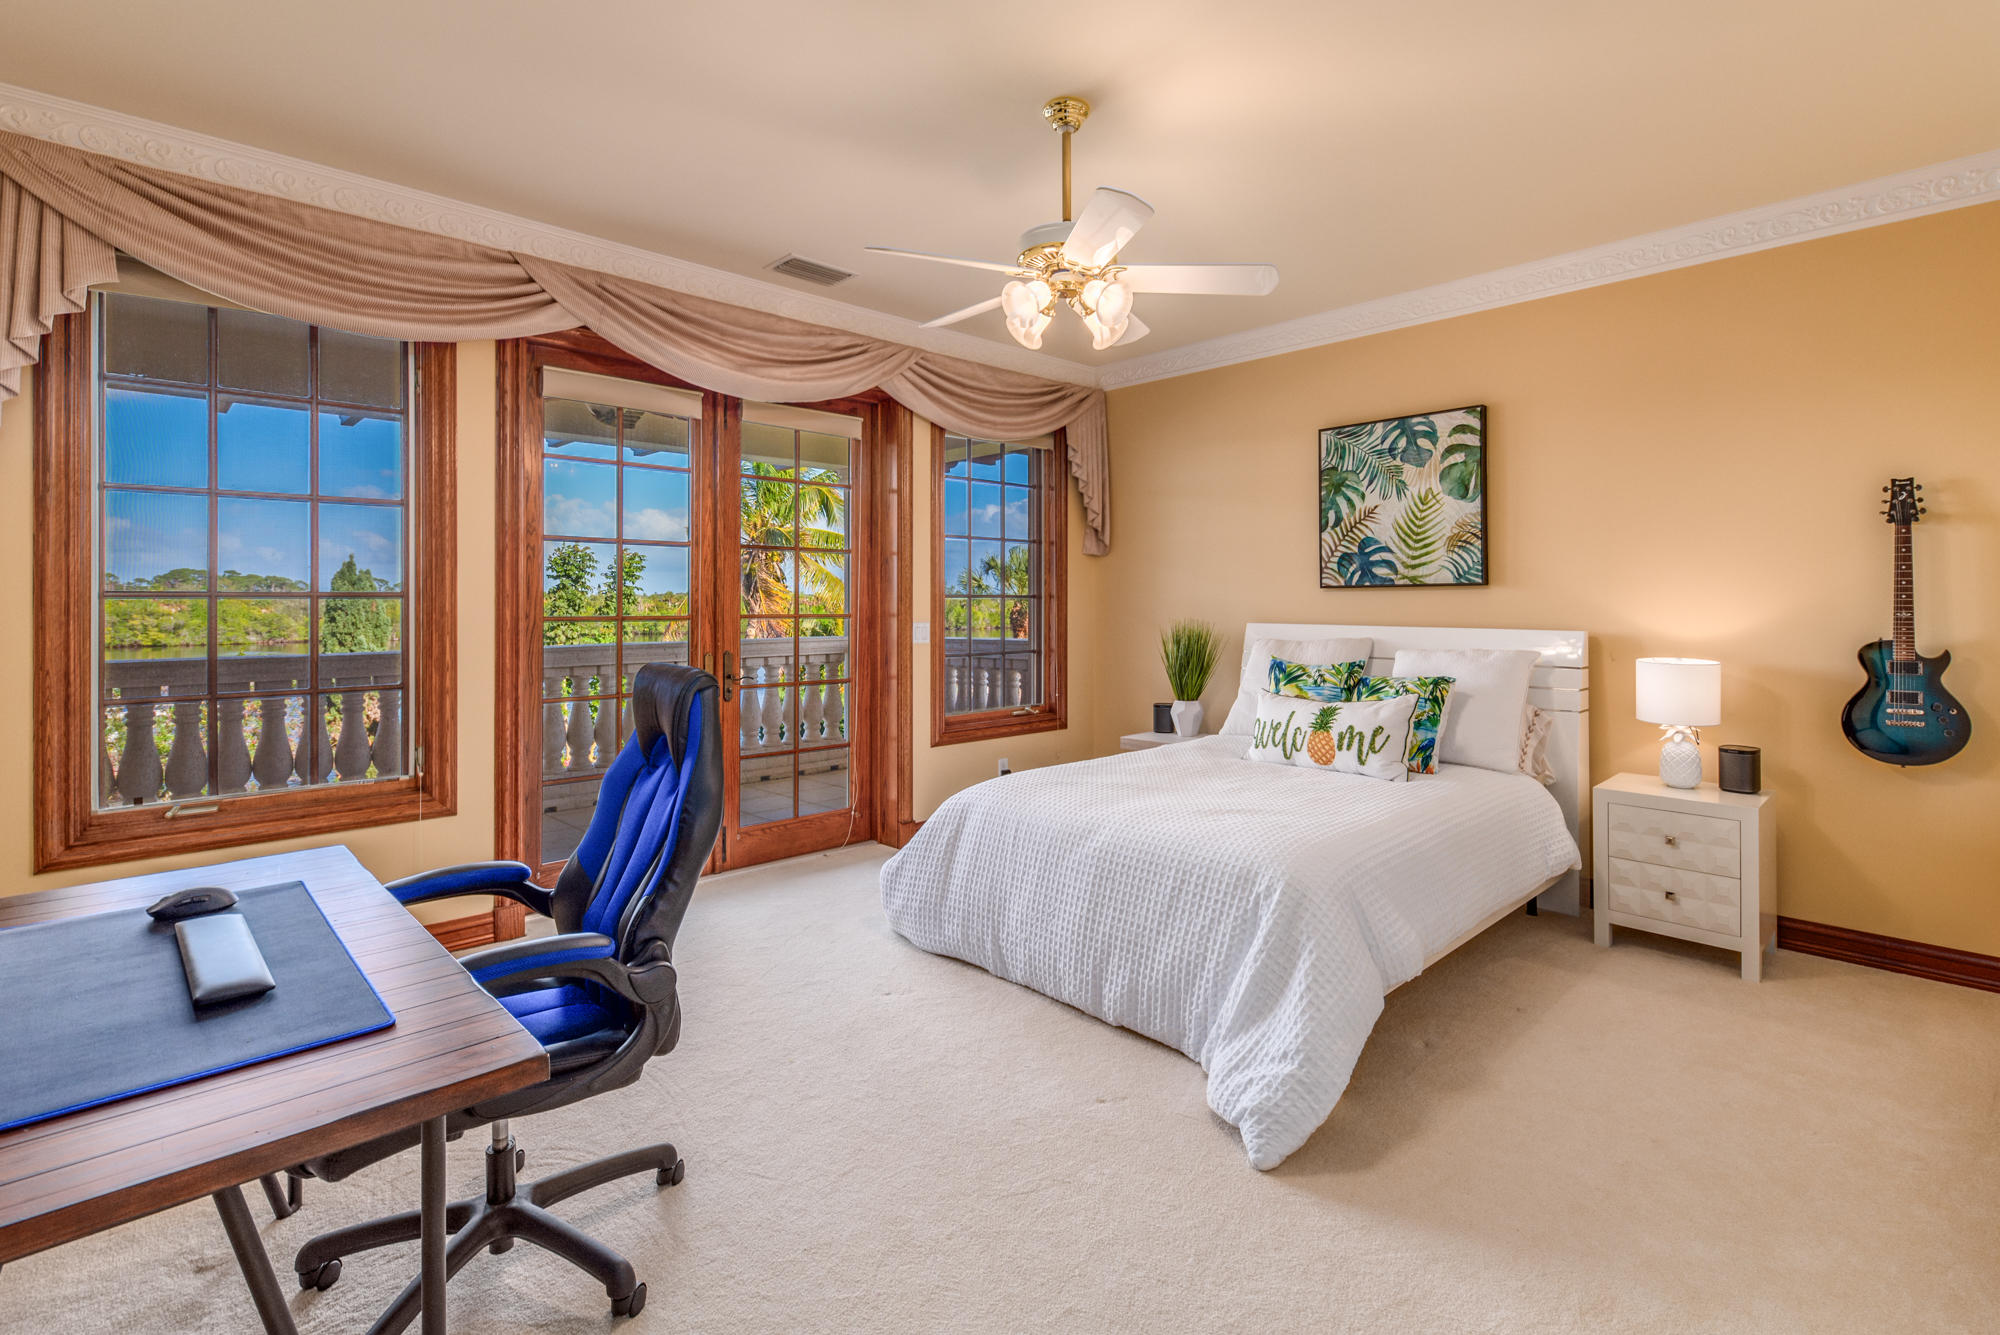 BAY ST LUCIE REAL ESTATE